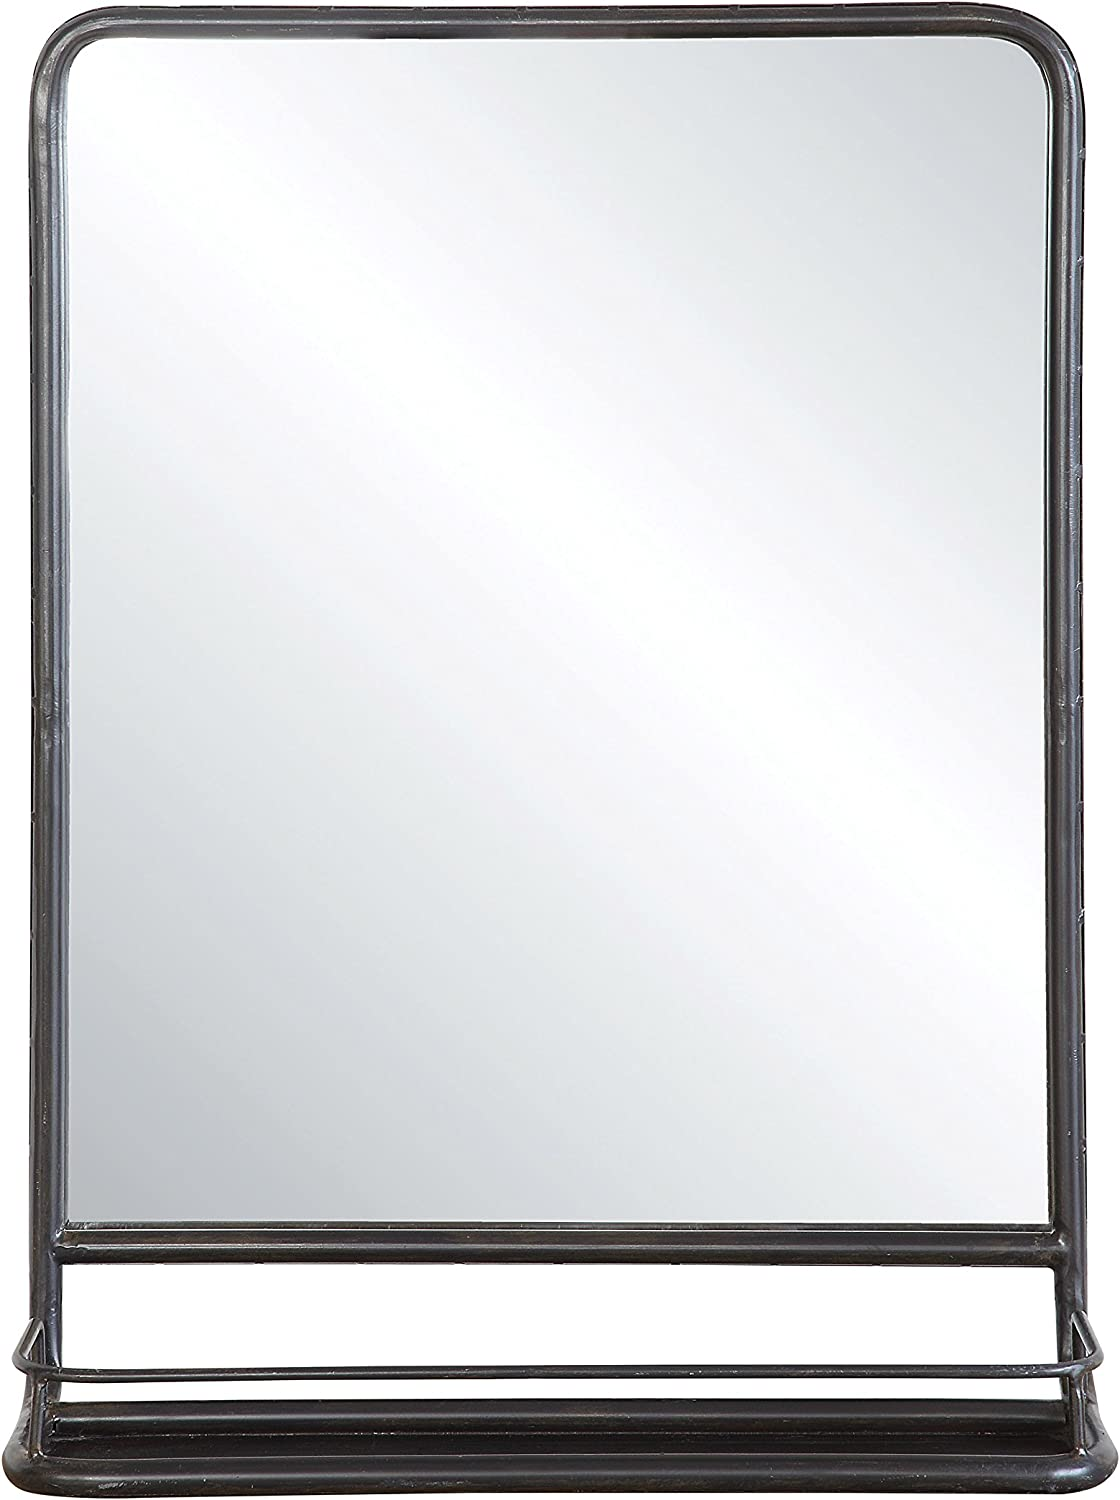 Creative Co-Op Large Metal Framed Shelf 47-Mirrors-Reflective, 19.5  x 27.5 , Black